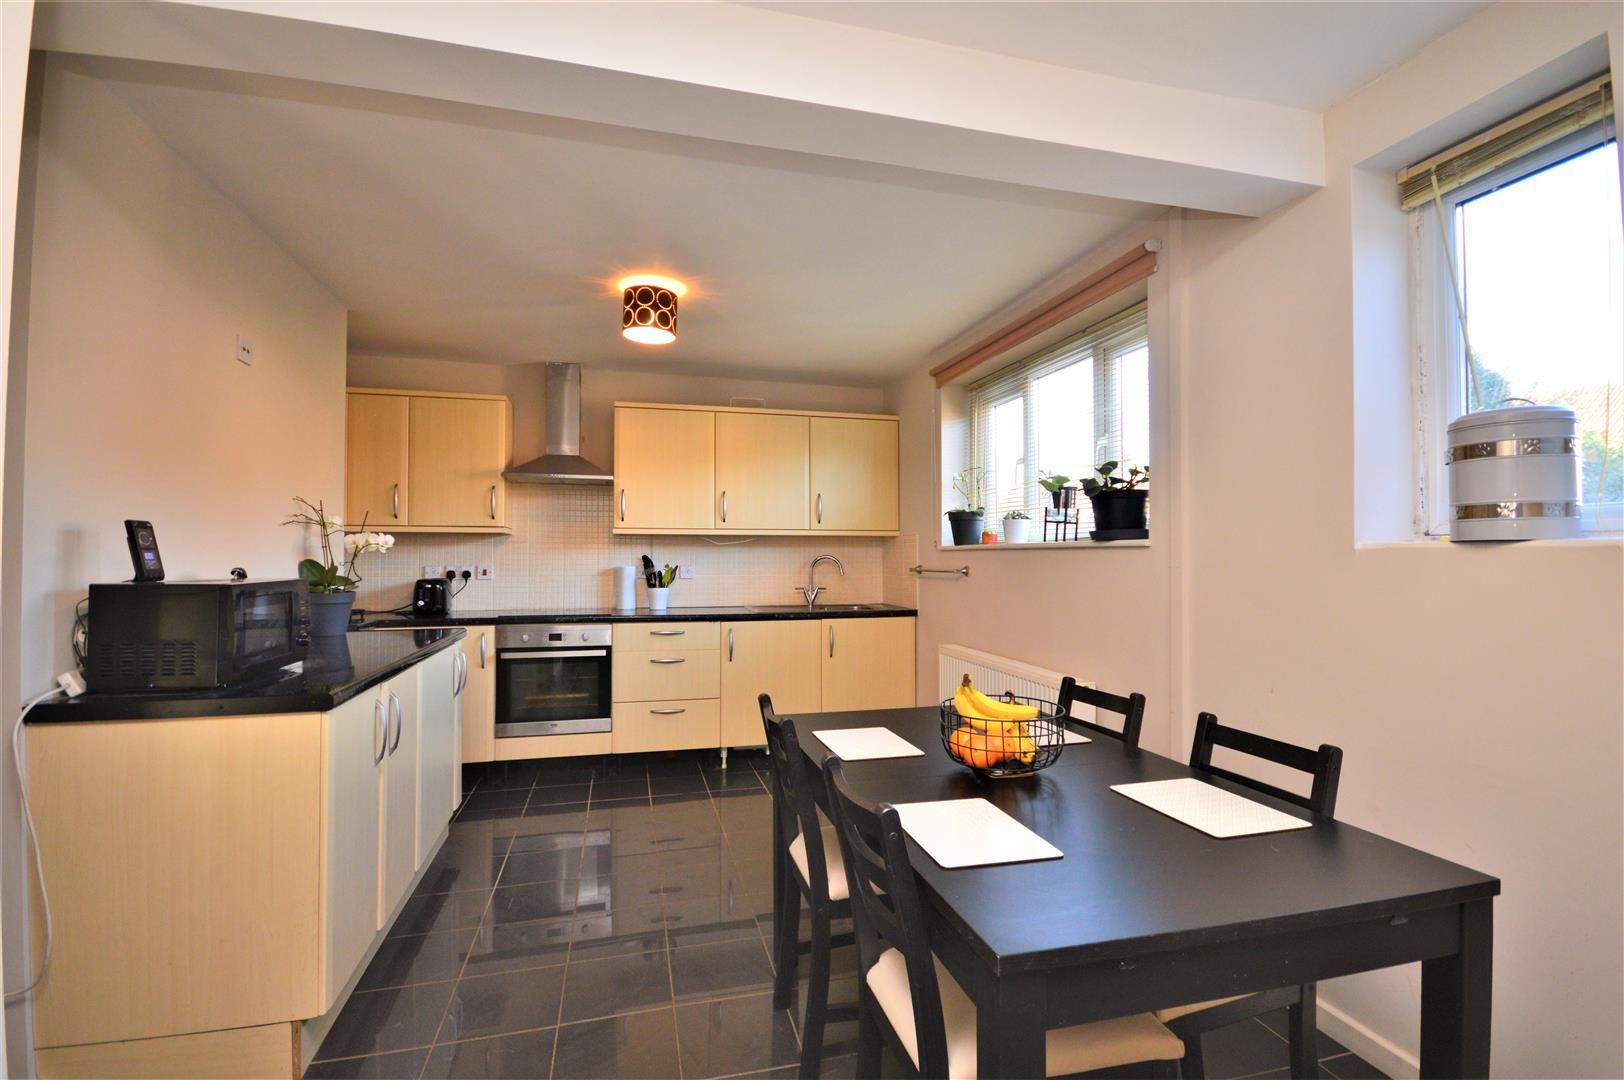 3 bed end-of-terrace for sale in Hereford  - Property Image 5